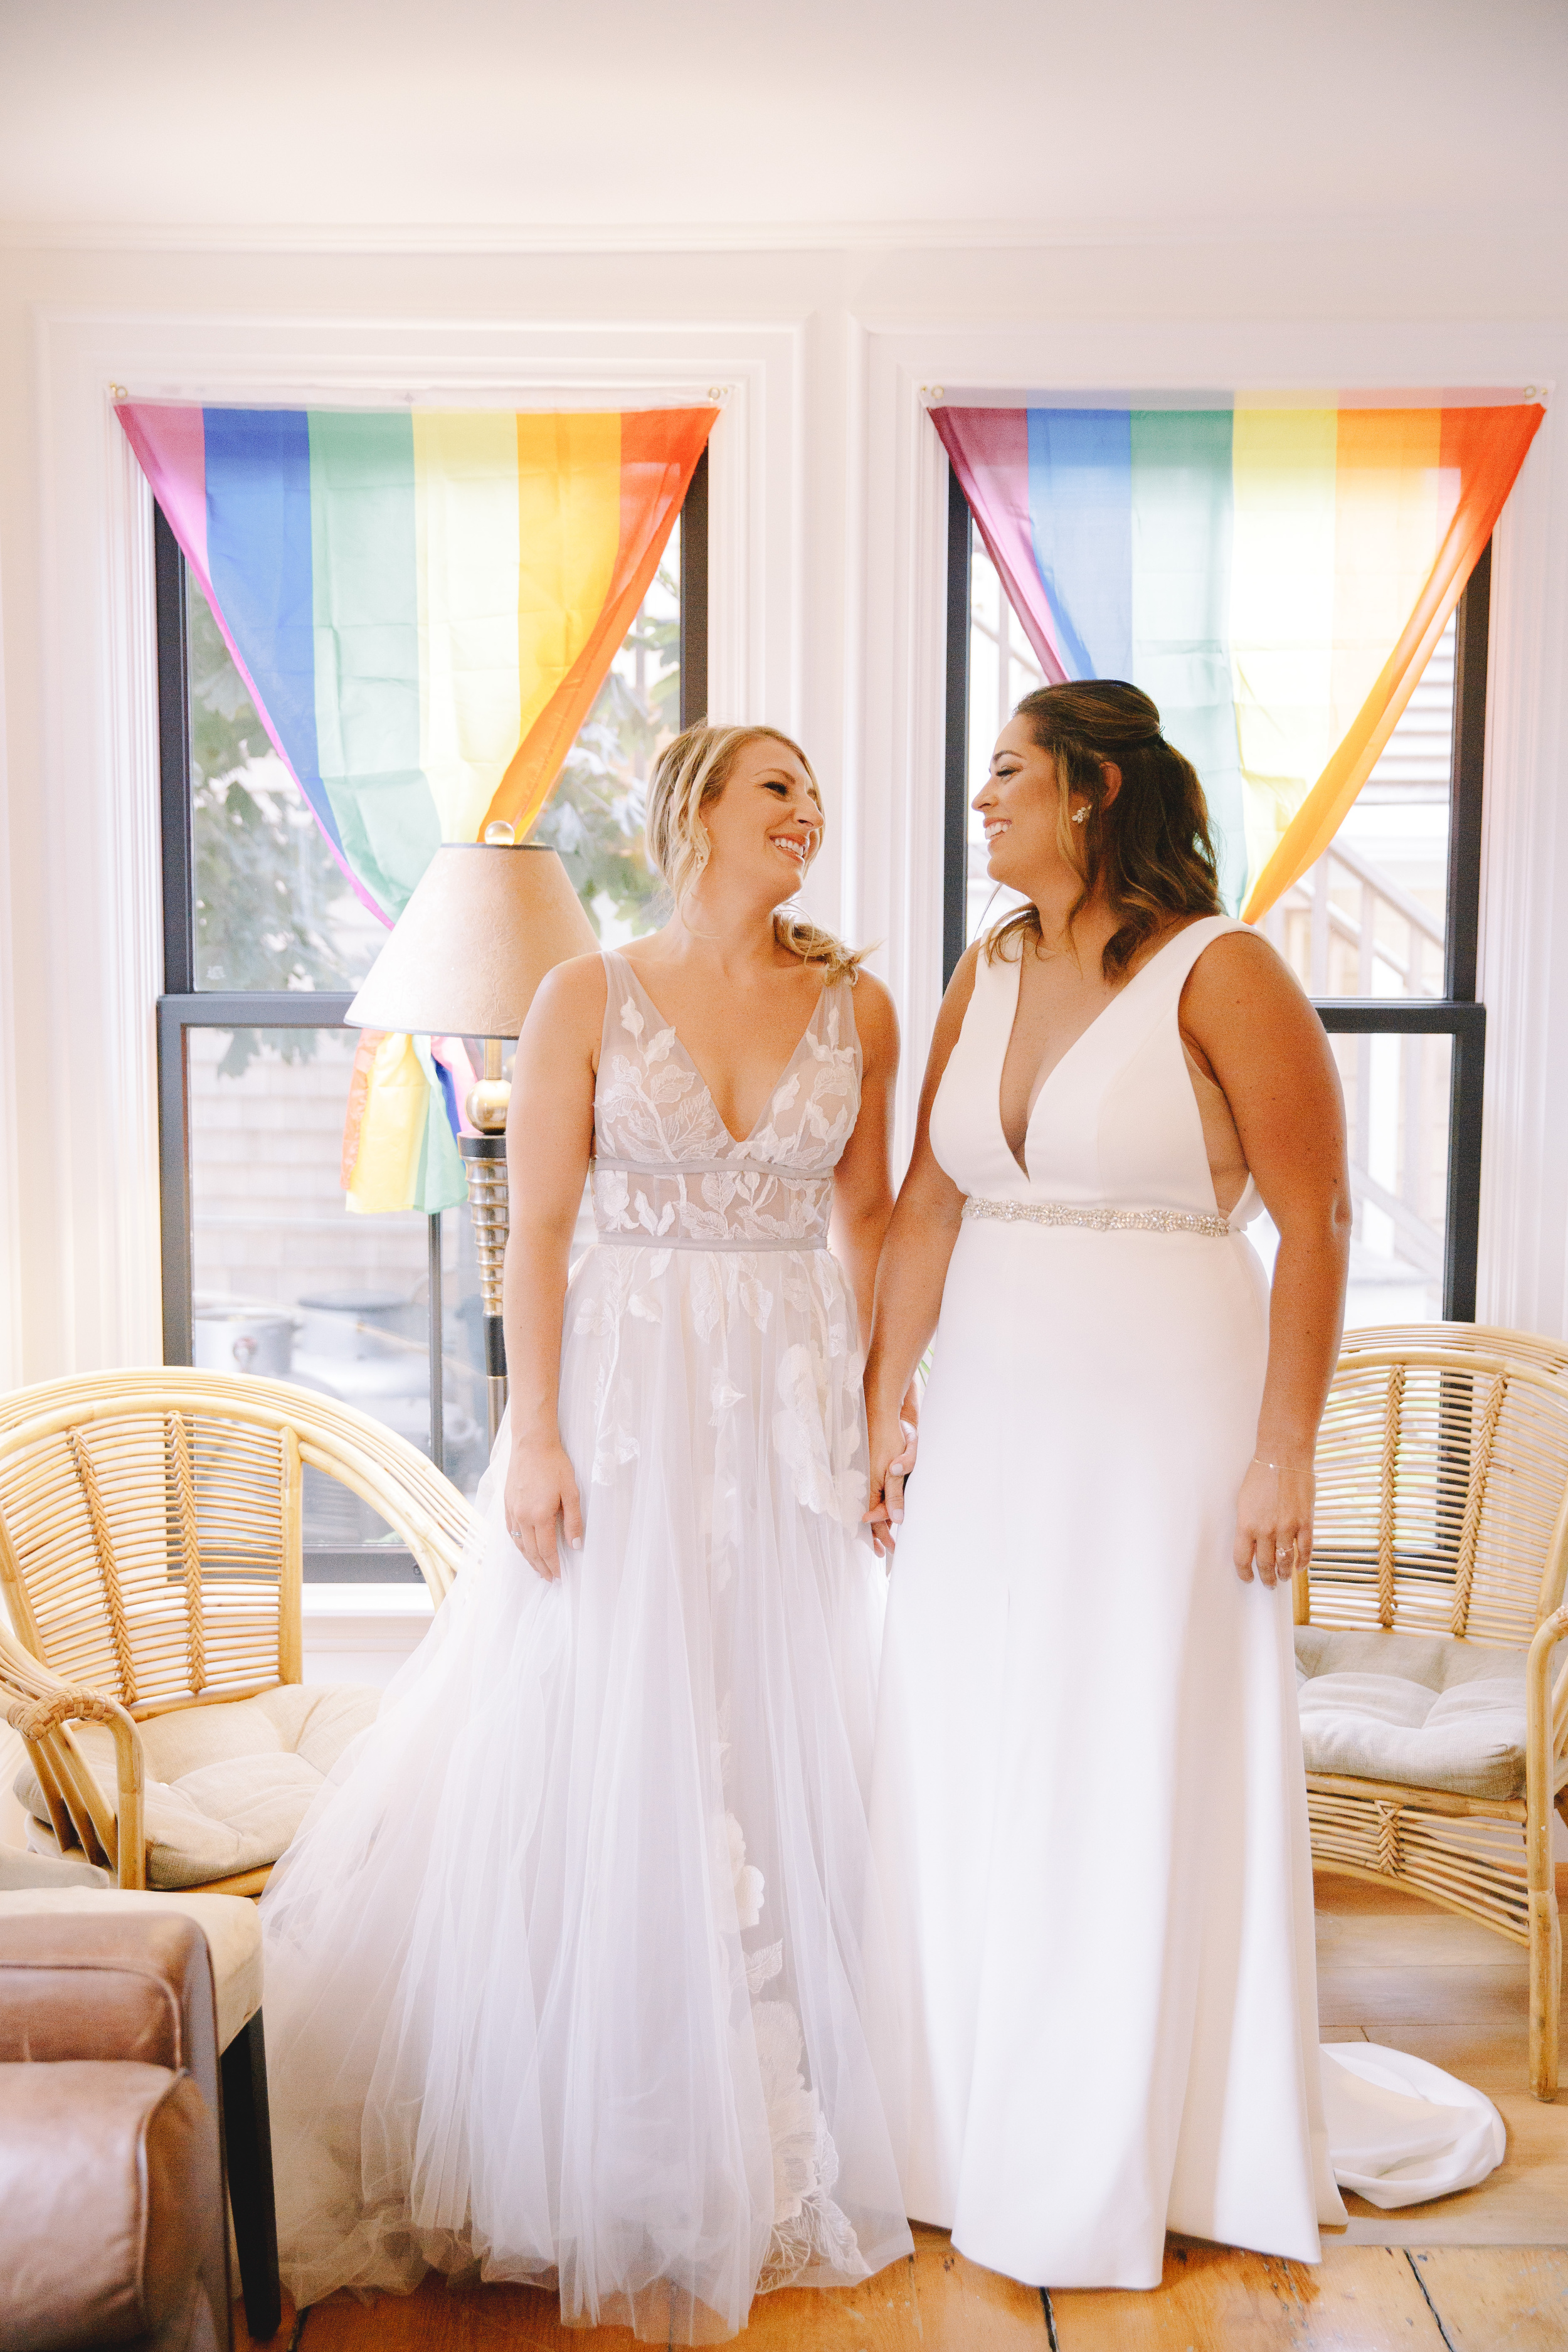 stunning brides with rainbow flags standing inside the waterford inn in provincetown at their wedding